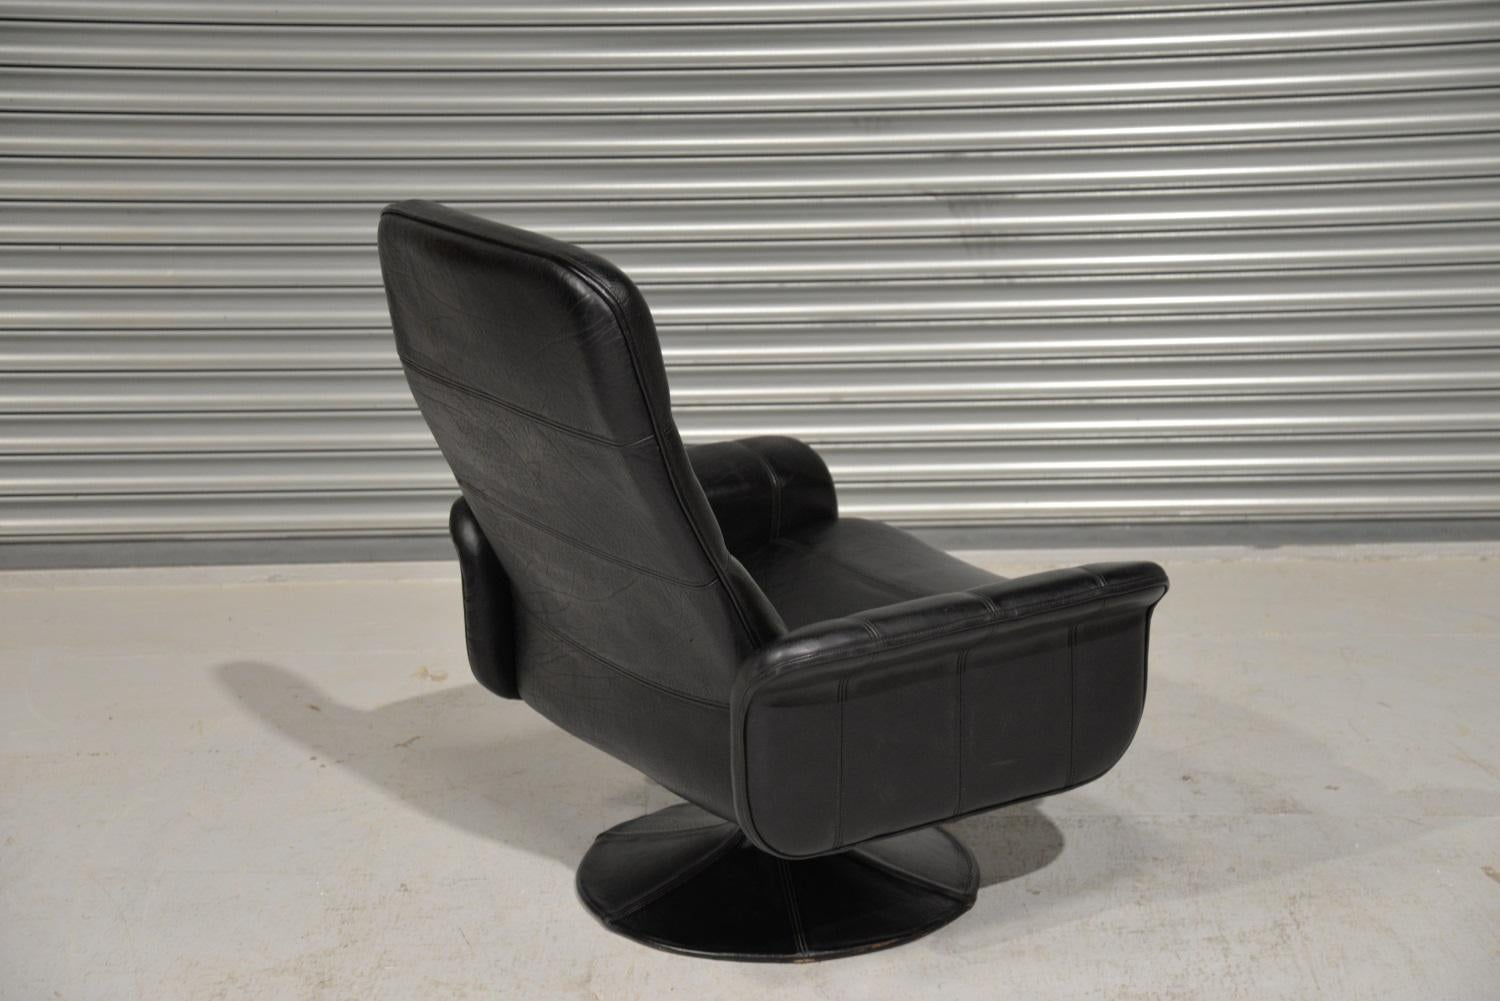 Vintage De Sede DS 50 Leather Swivel Armchair, Switzerland, 1970s